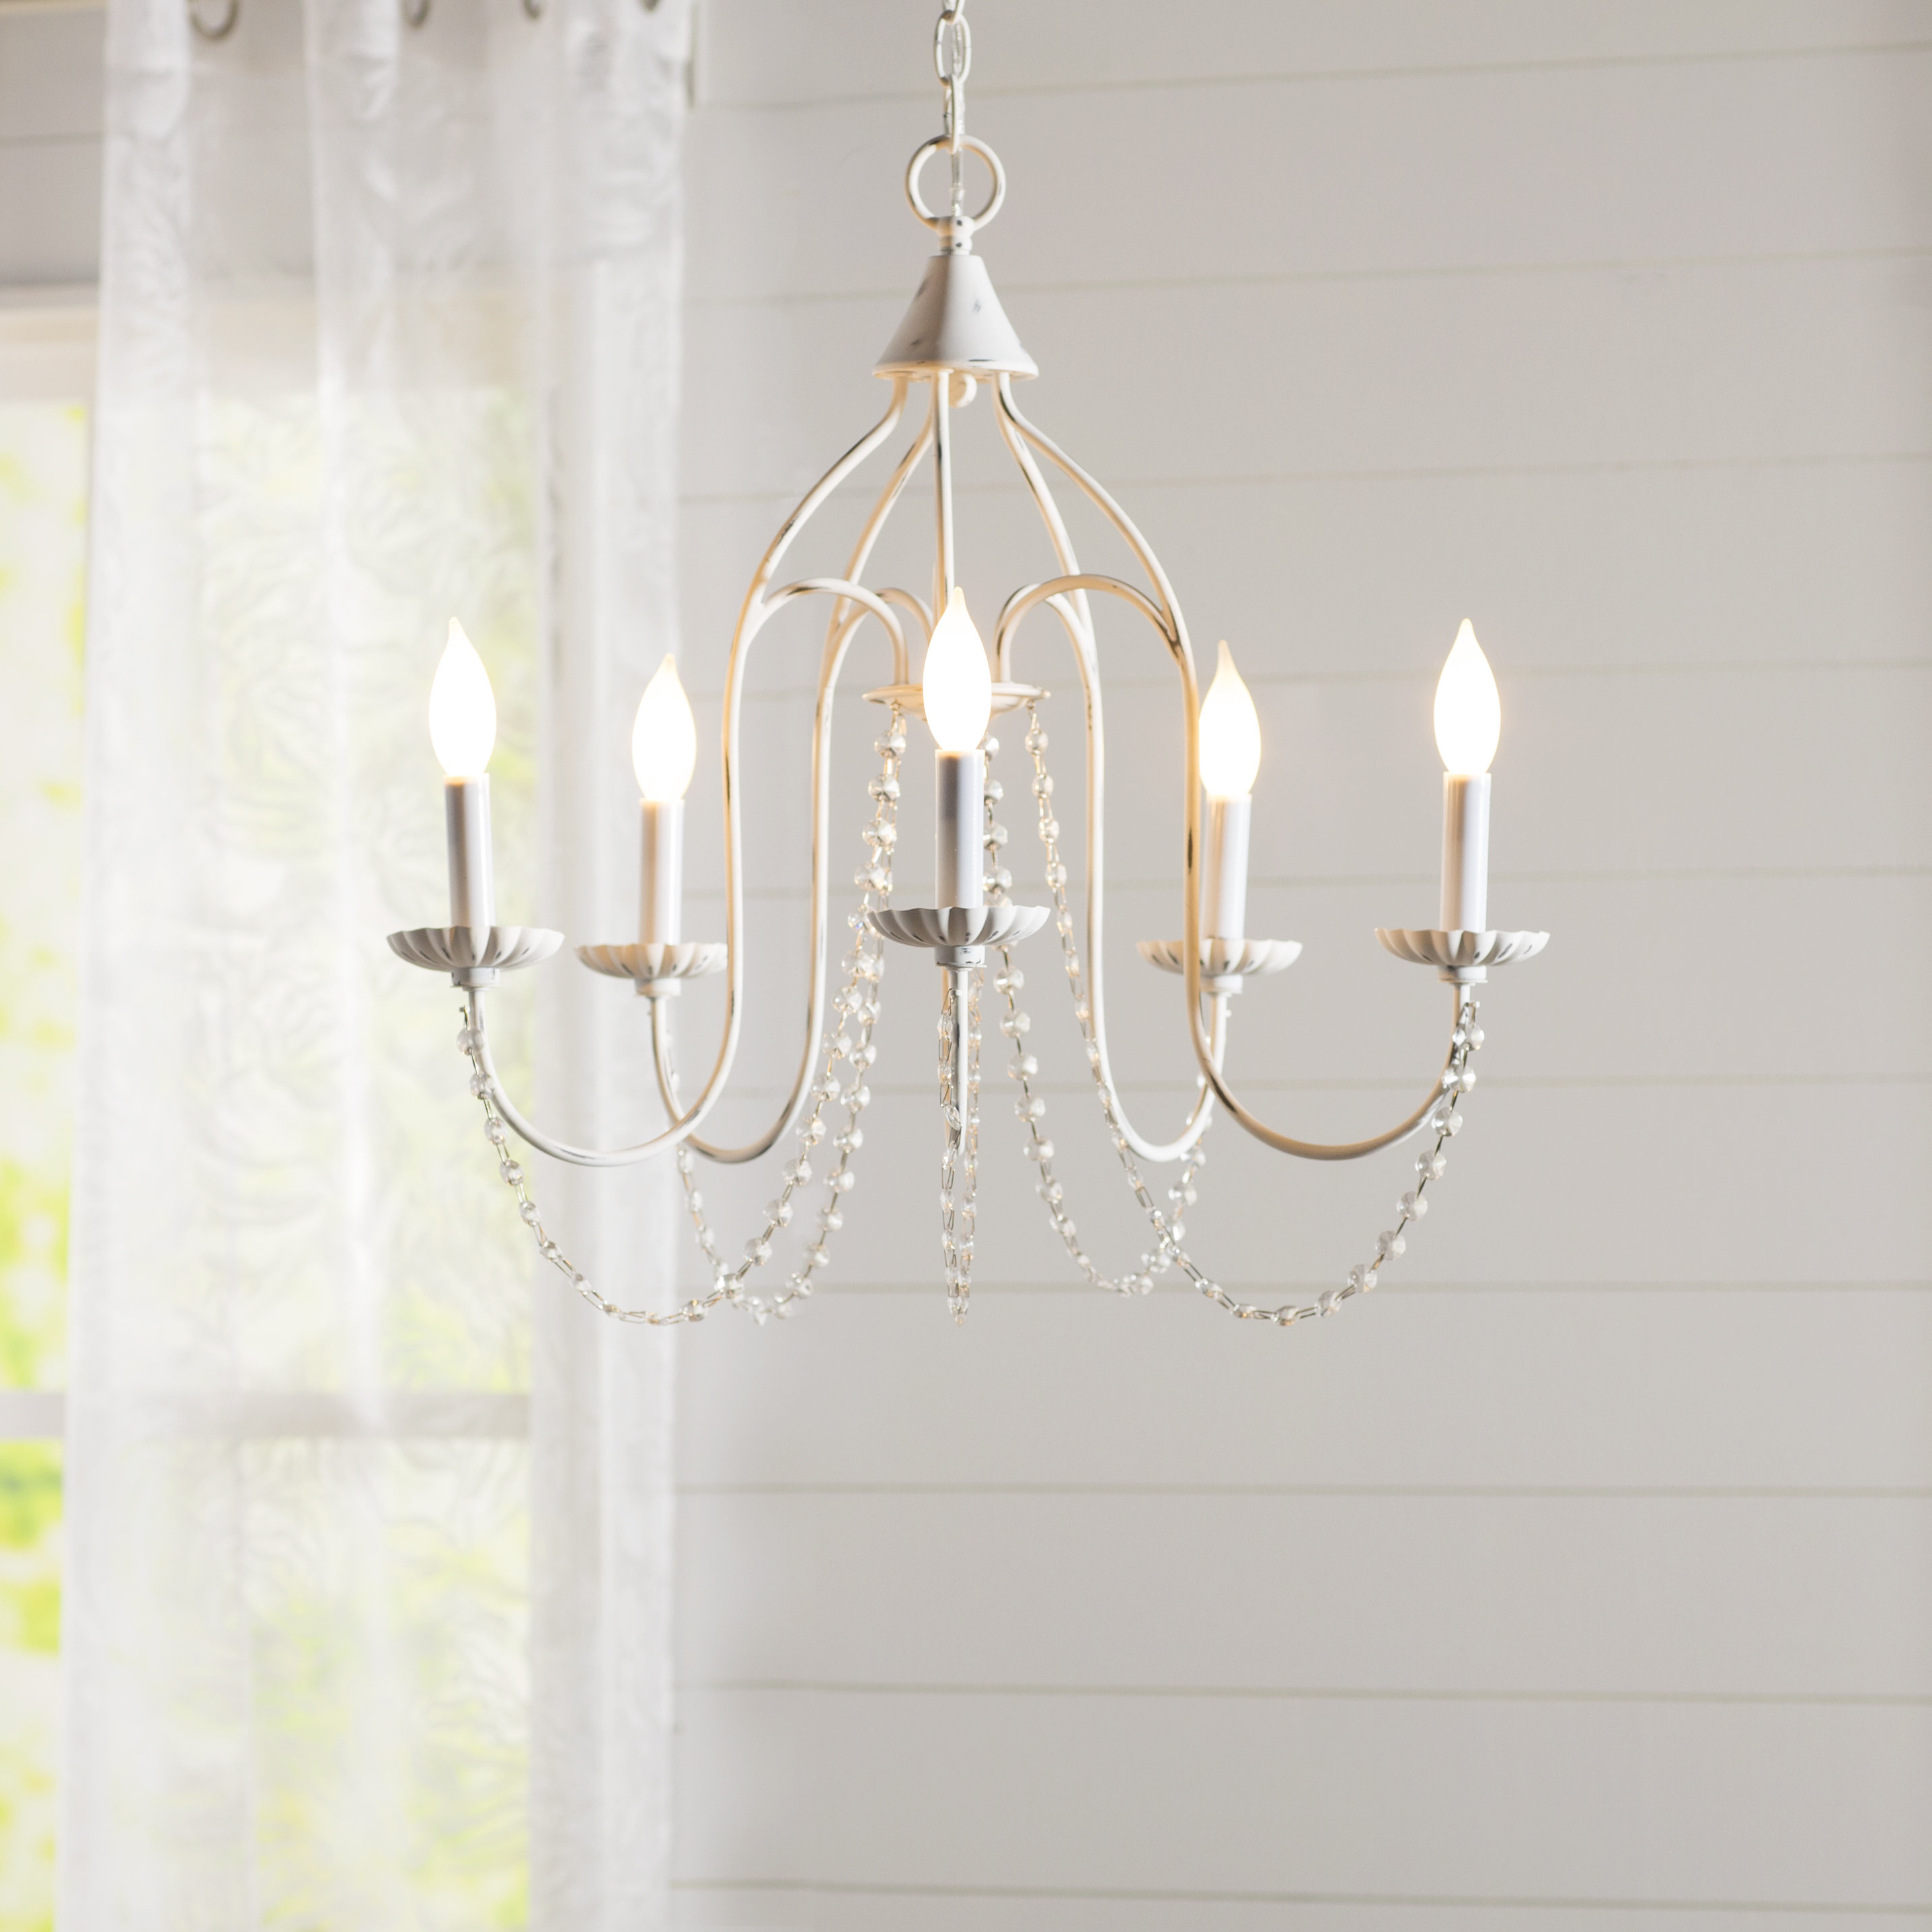 Berger 5 Light Candle Style Chandeliers For Famous Florentina 5 Light Candle Style Chandelier (View 6 of 20)